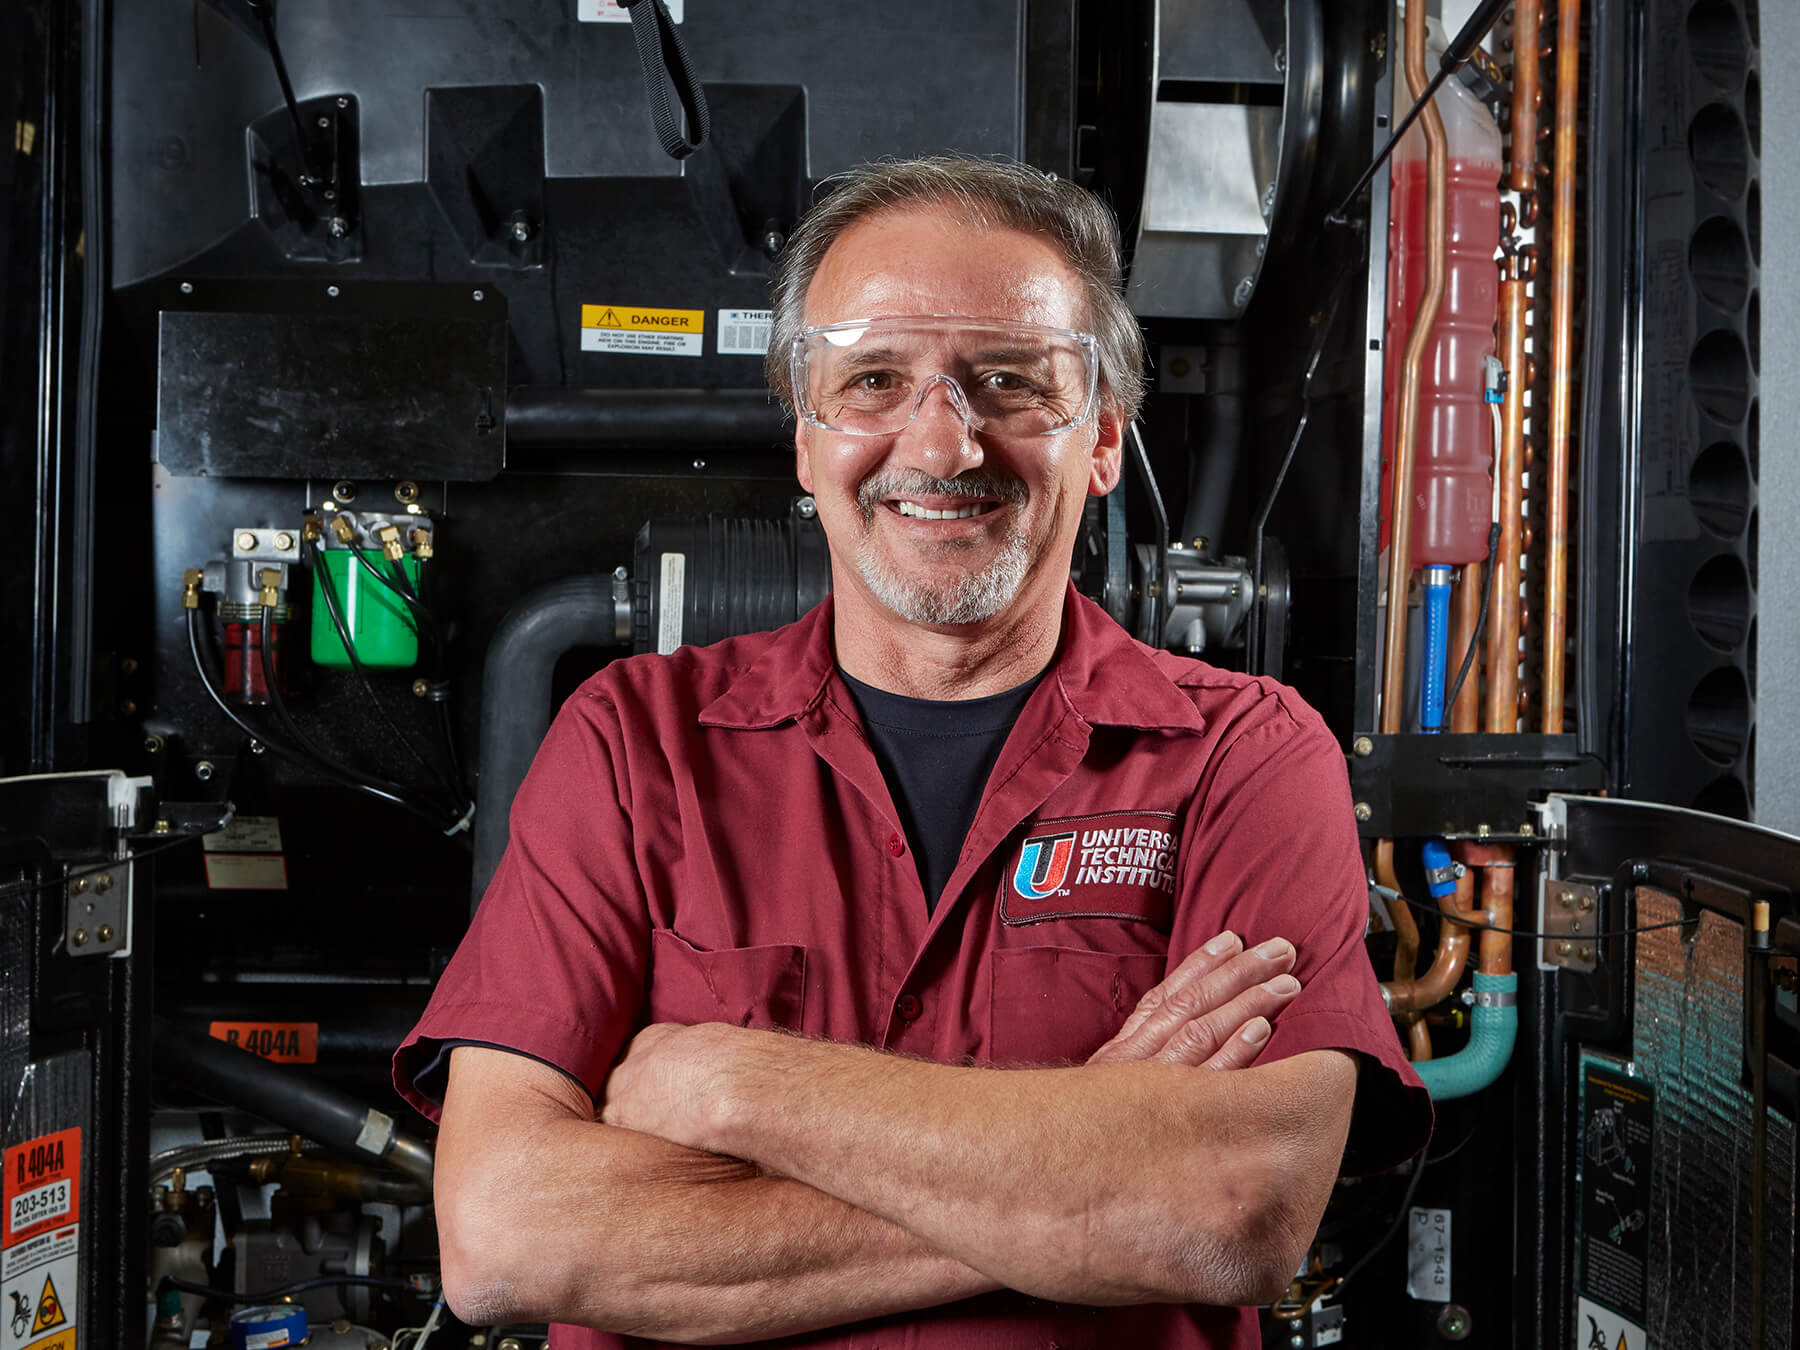 UTI instructor smiling  at the Dallas campus